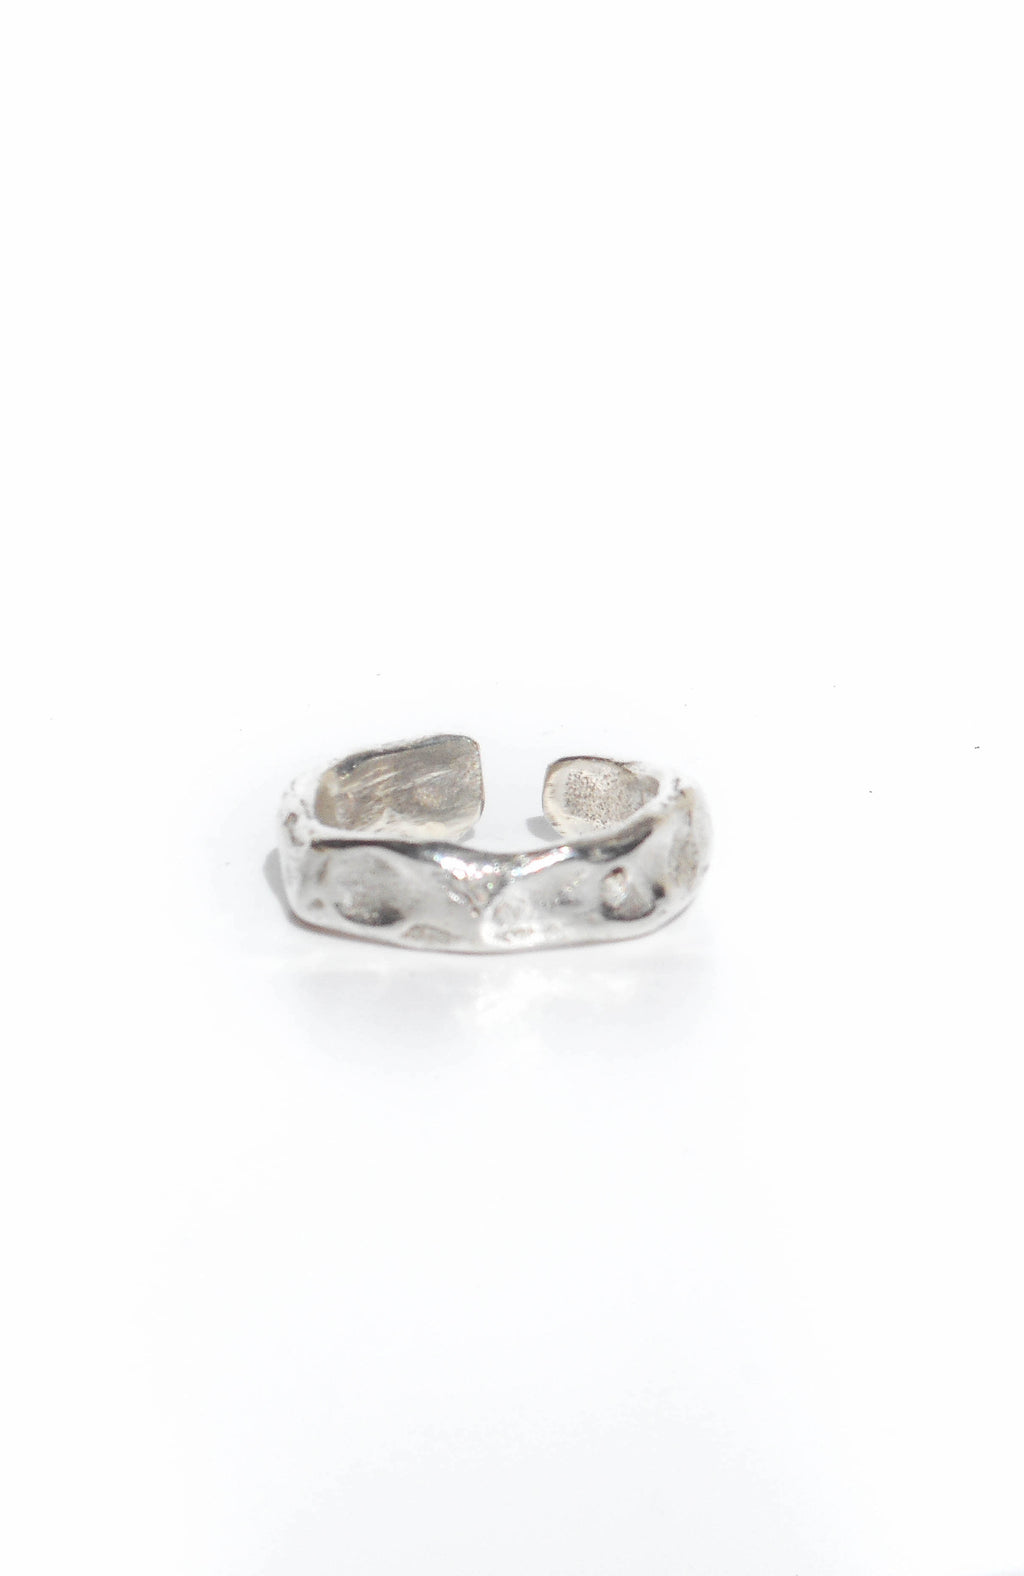 Sterling silver knuckle ring with rustic surface handmade in Puerto Rico